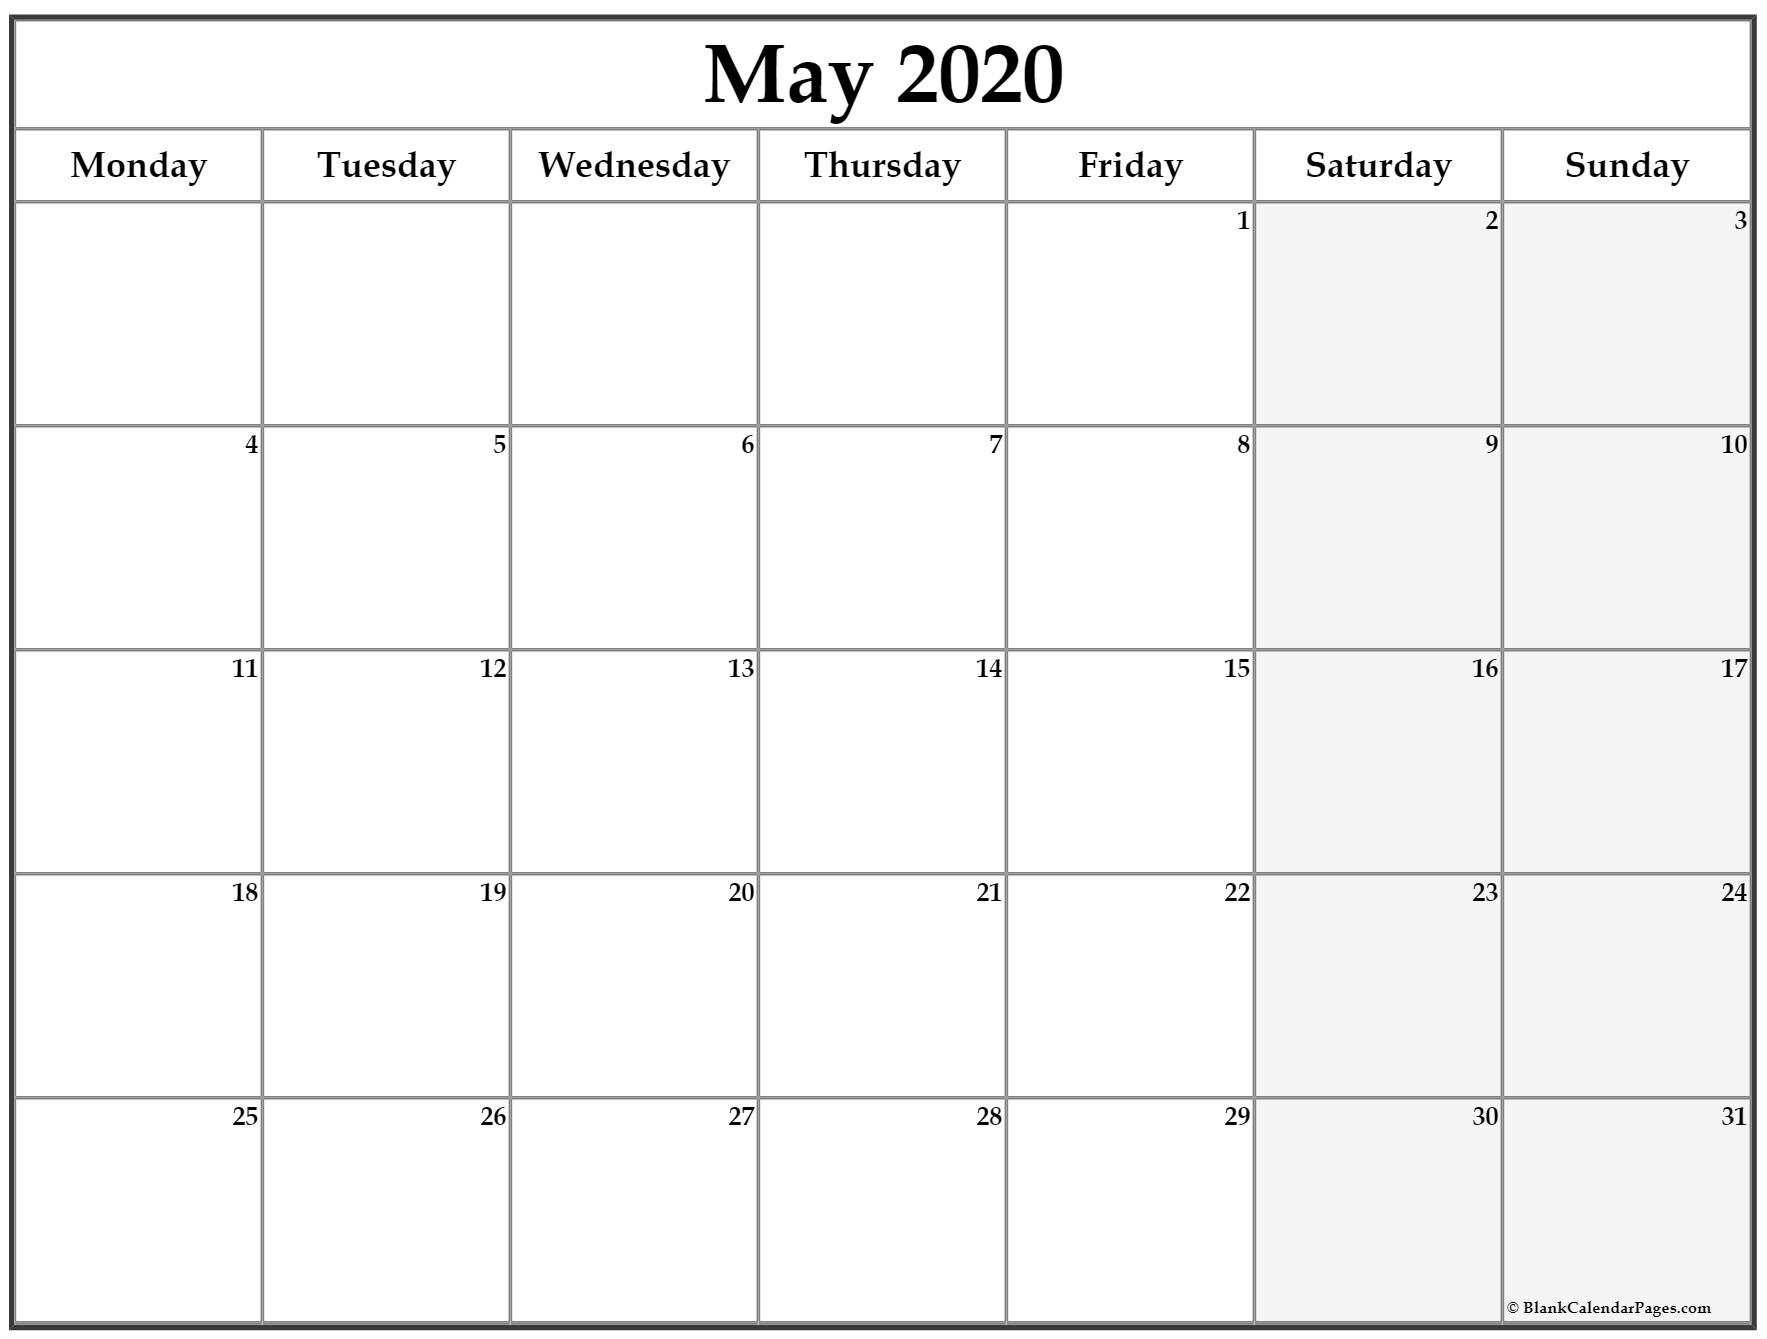 May 2020 Monday Calendar | Monday To Sunday Printable Calender For Mon Through Friday